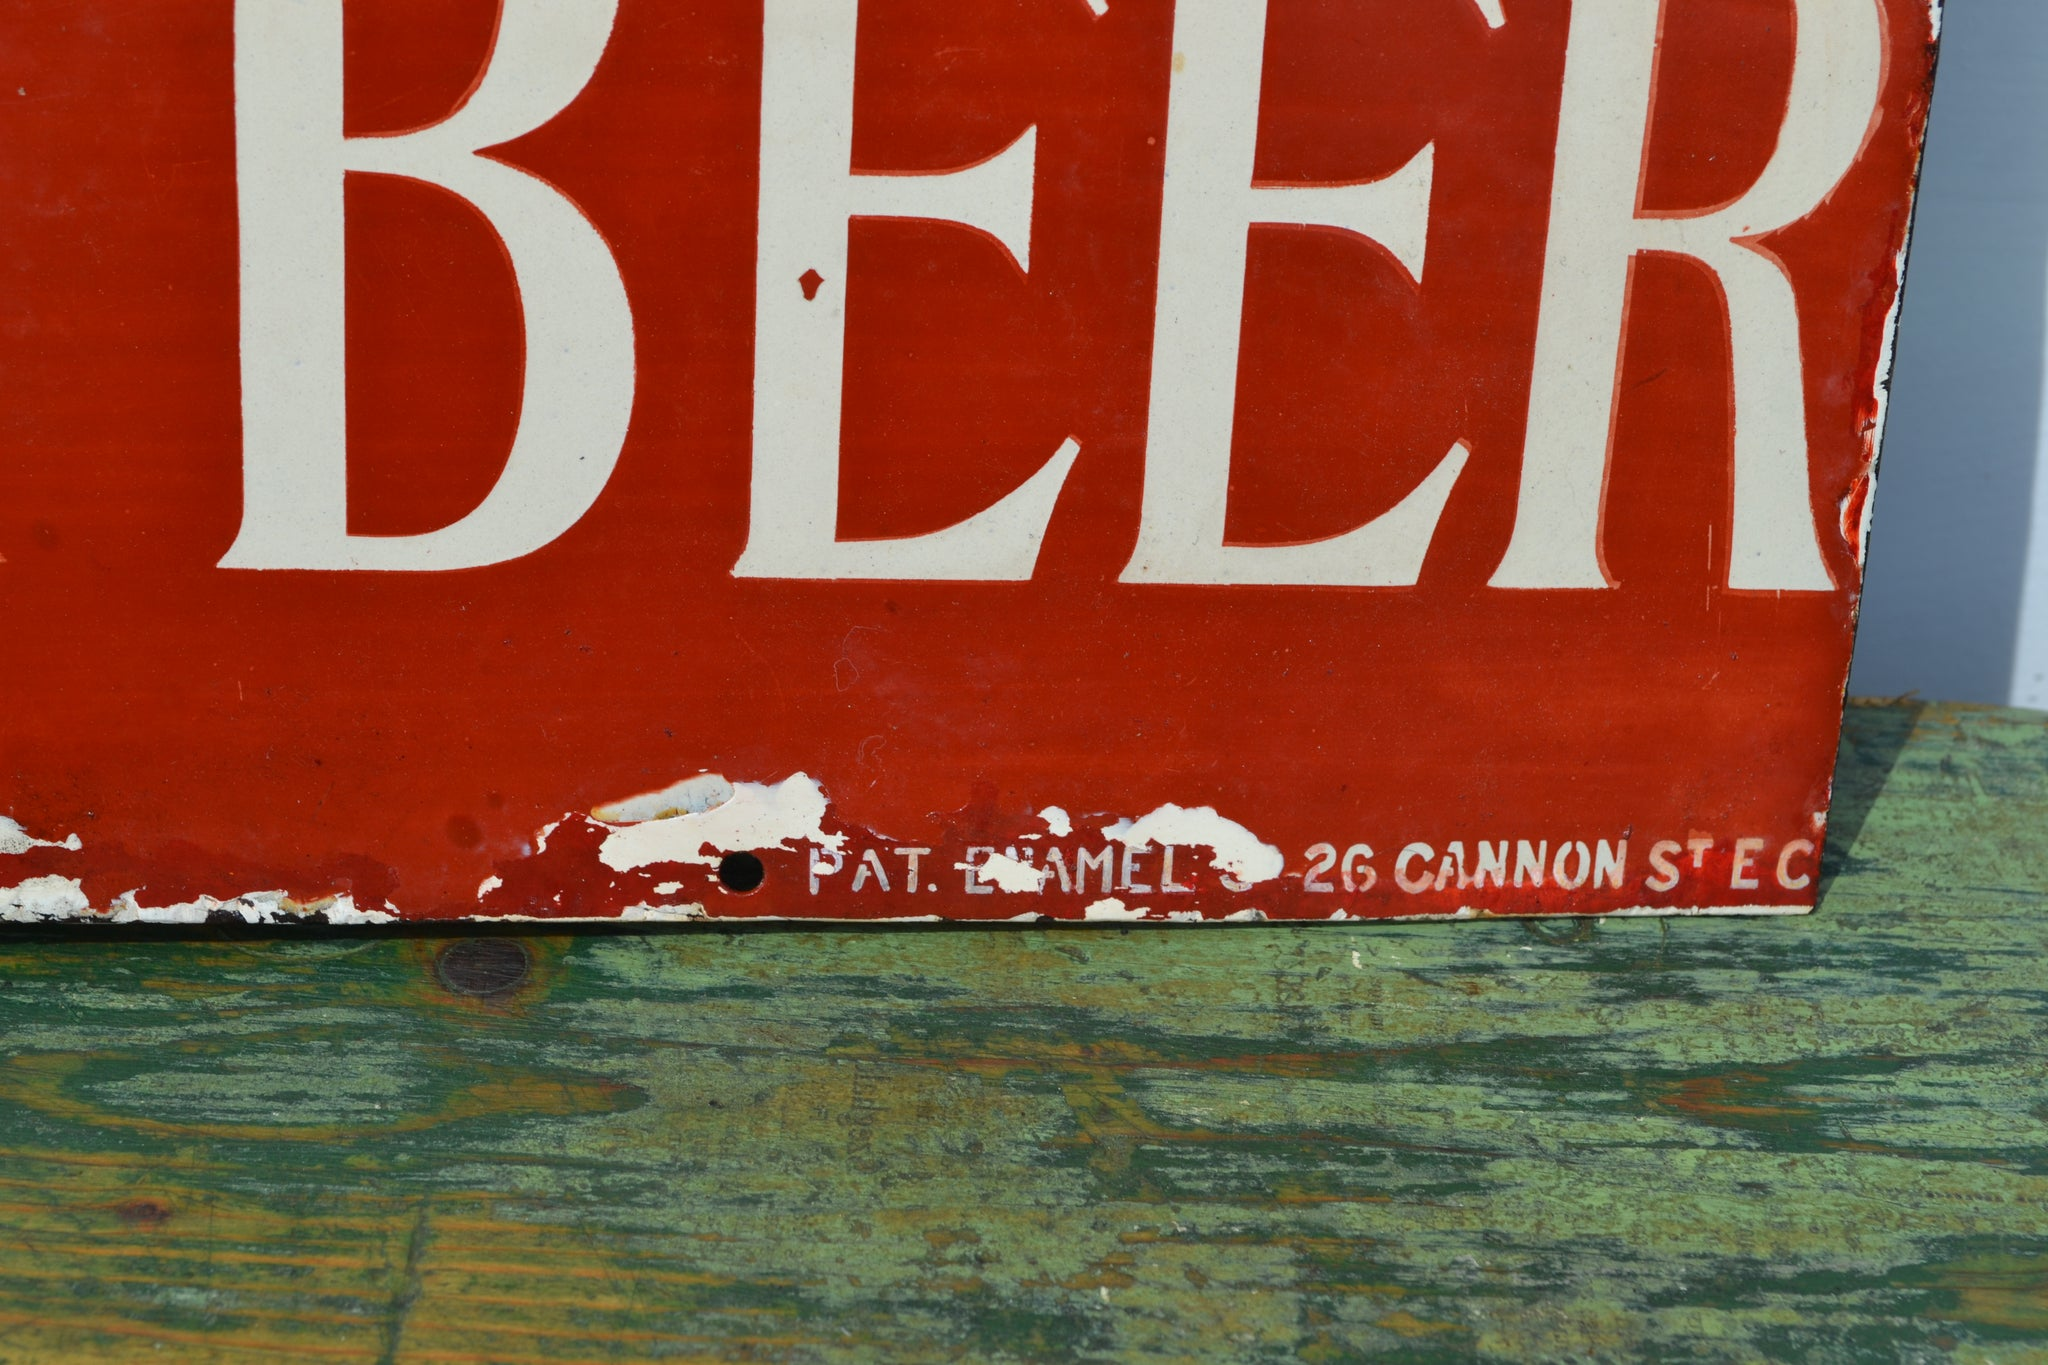 A Dartnell's Ginger Beer enamel sign